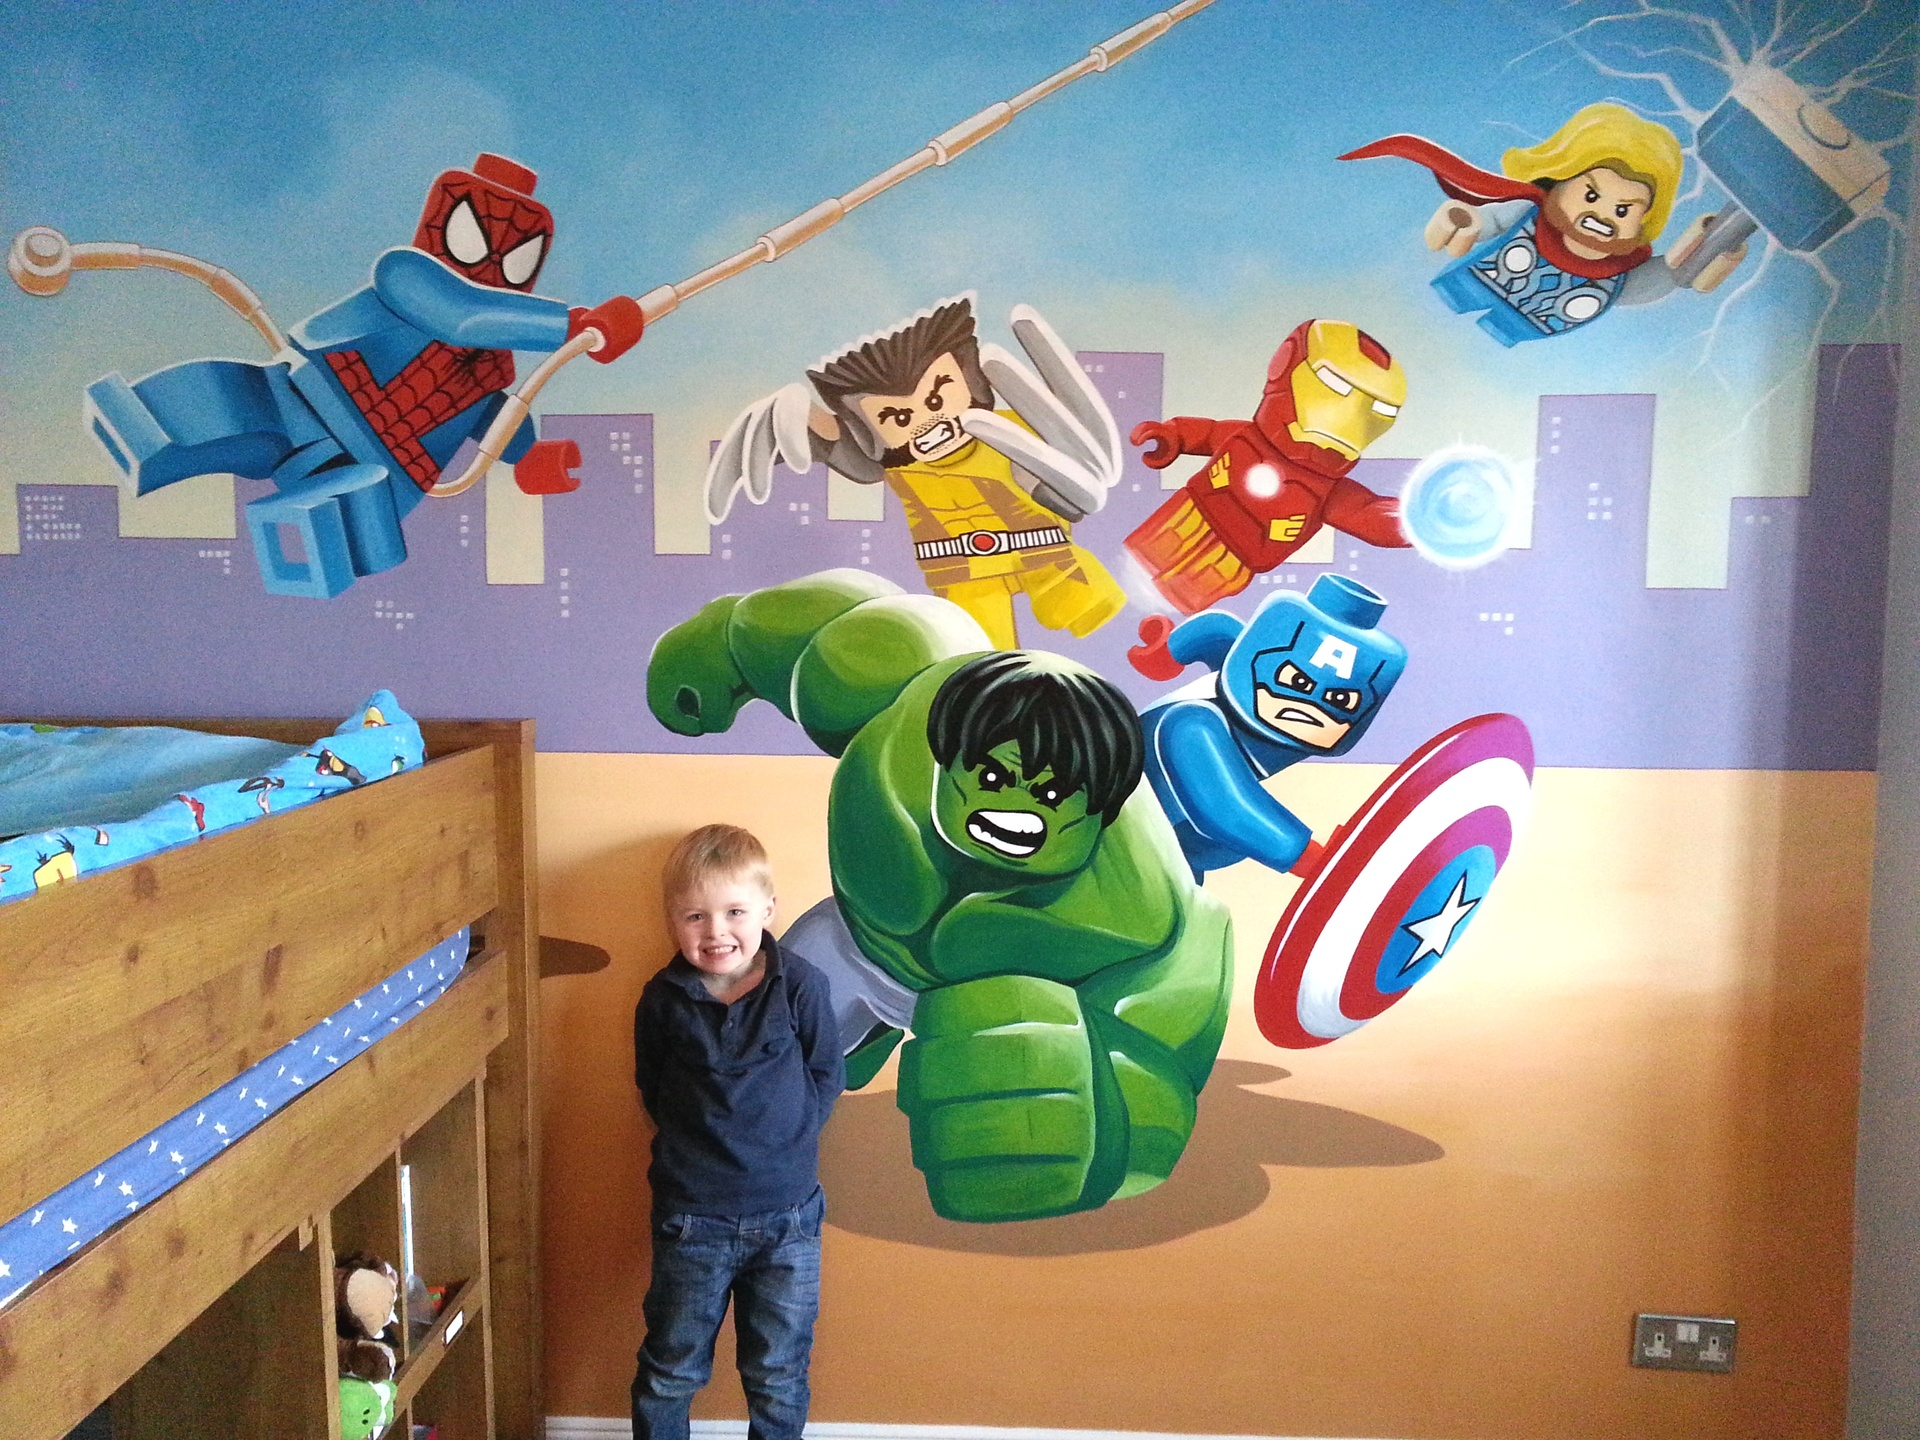 Lego Bedroom Wallpaper Sports Murals For Bedrooms Compare Prices Wallpaper Sport Shopping